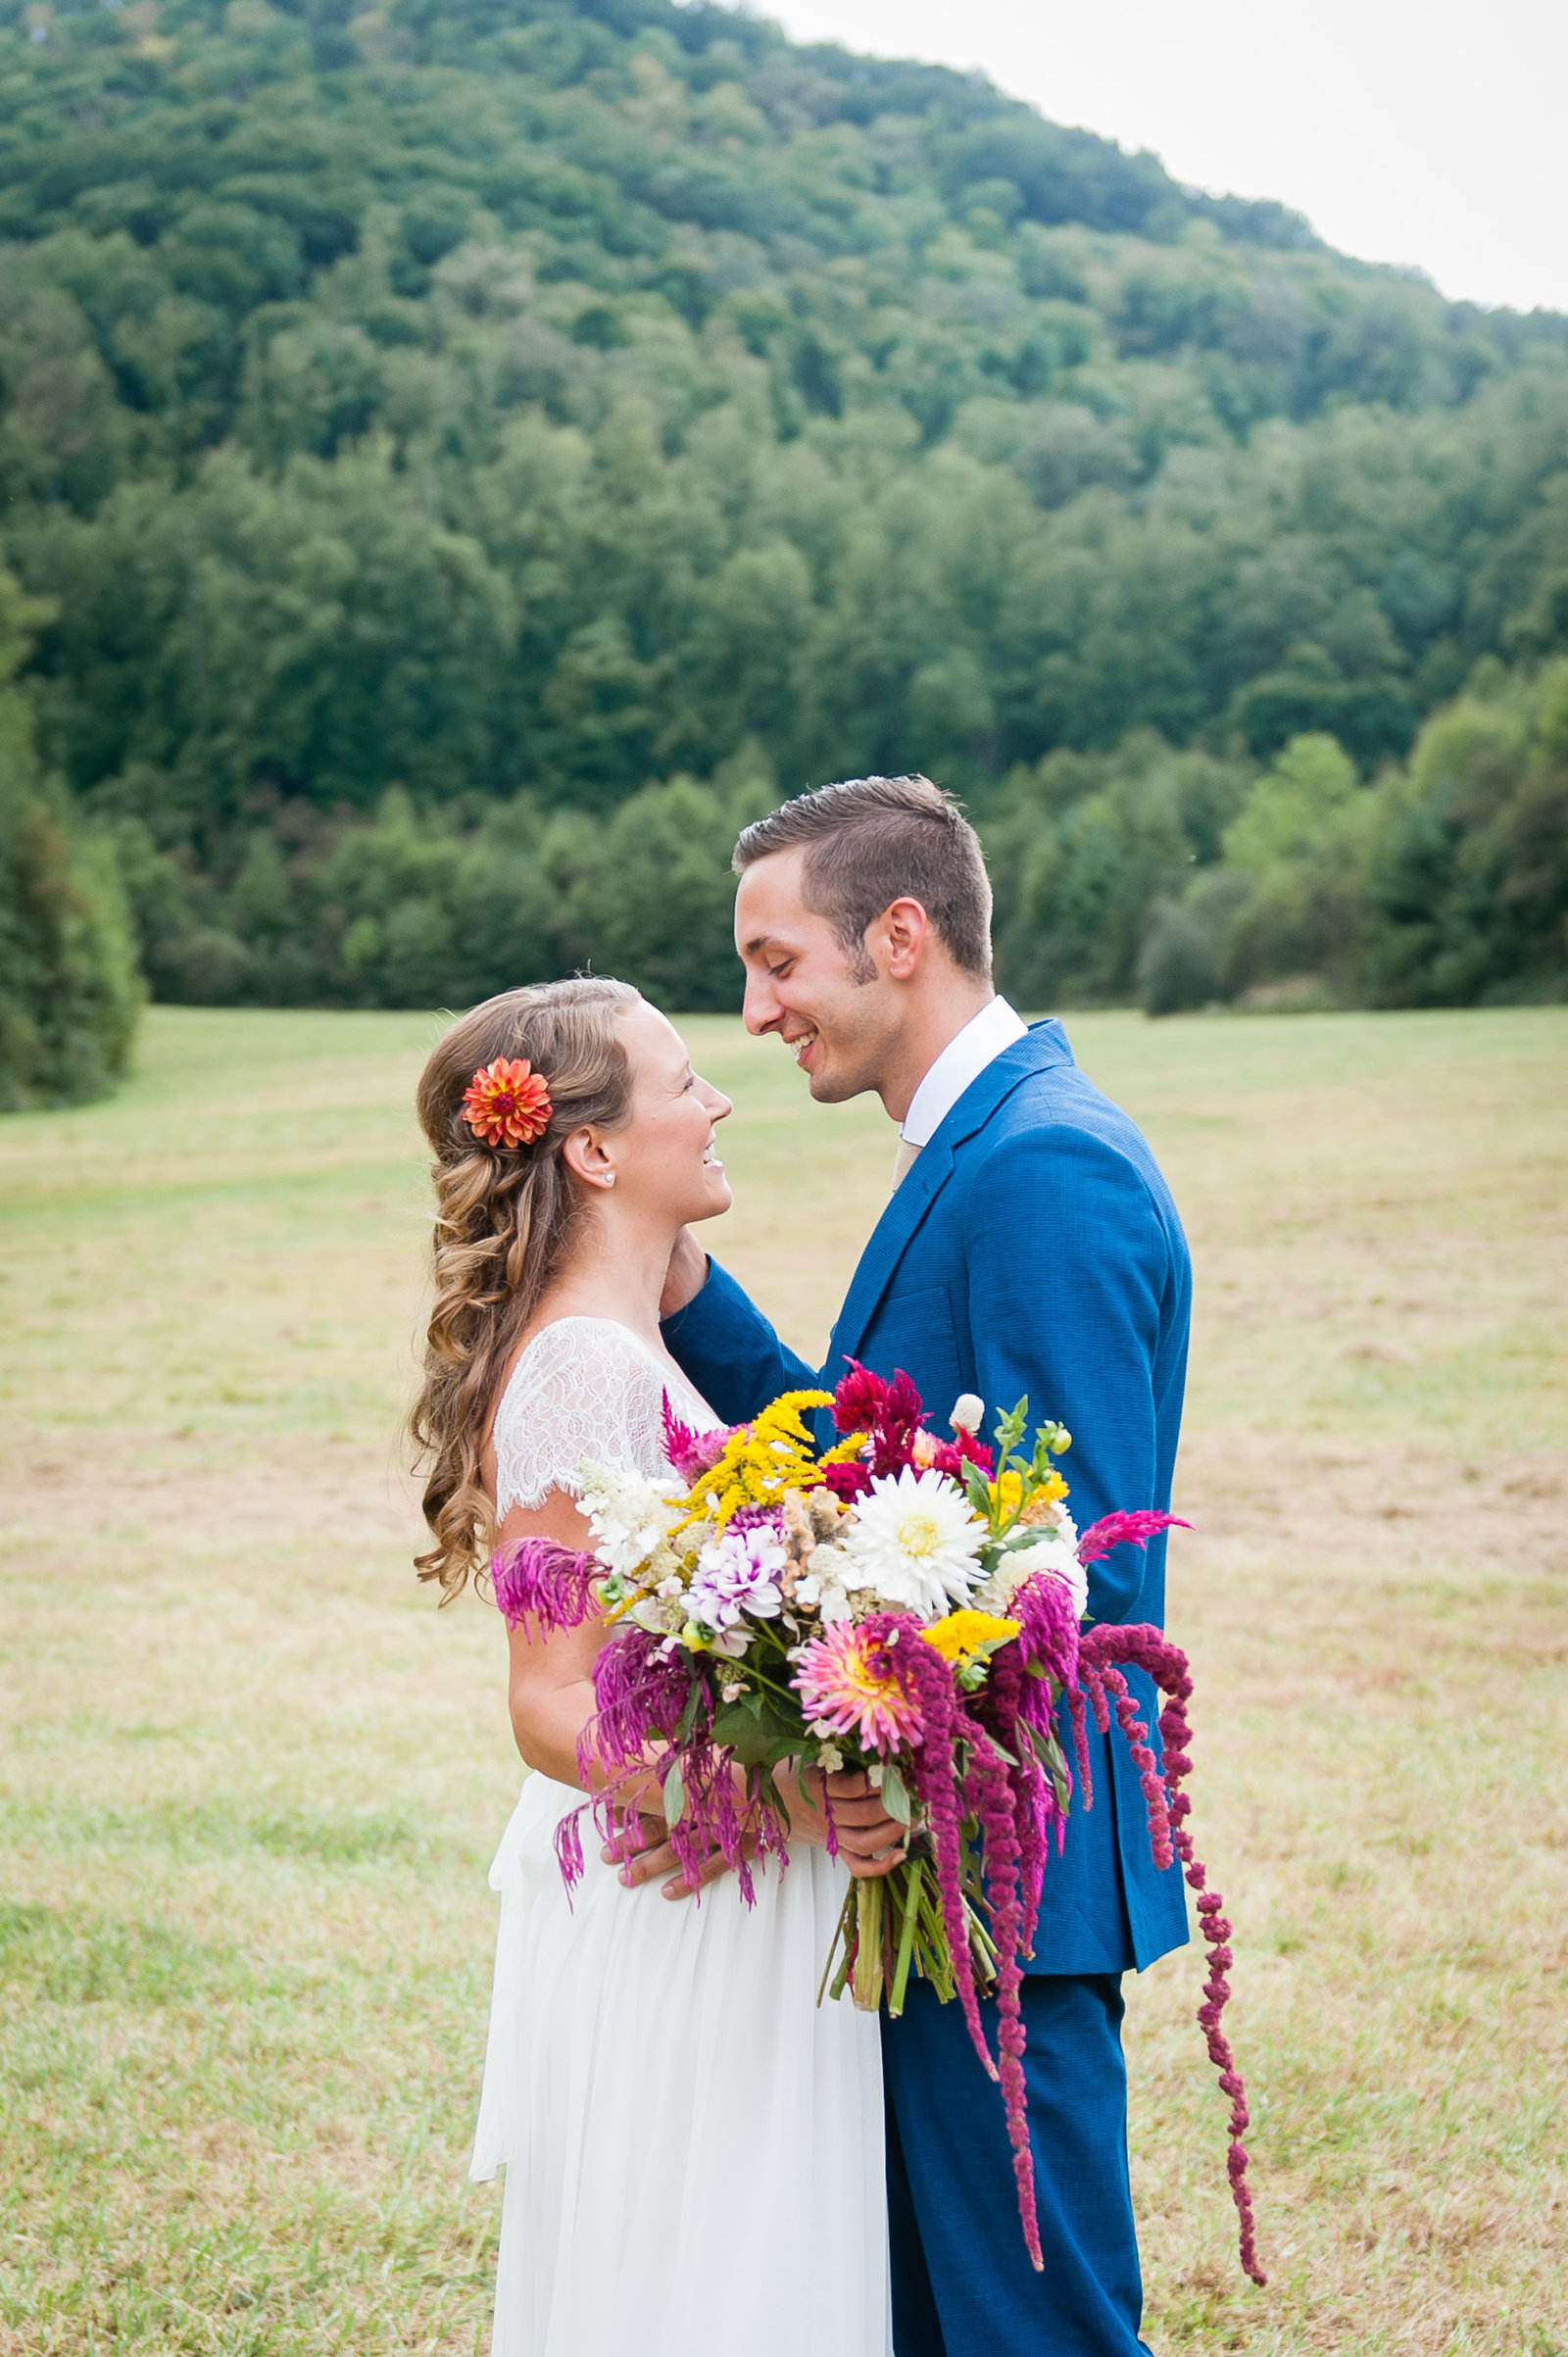 Shelly-and-Ryan-Asheville-NC-Wedding-Melissa-Desjardins-Photography-3